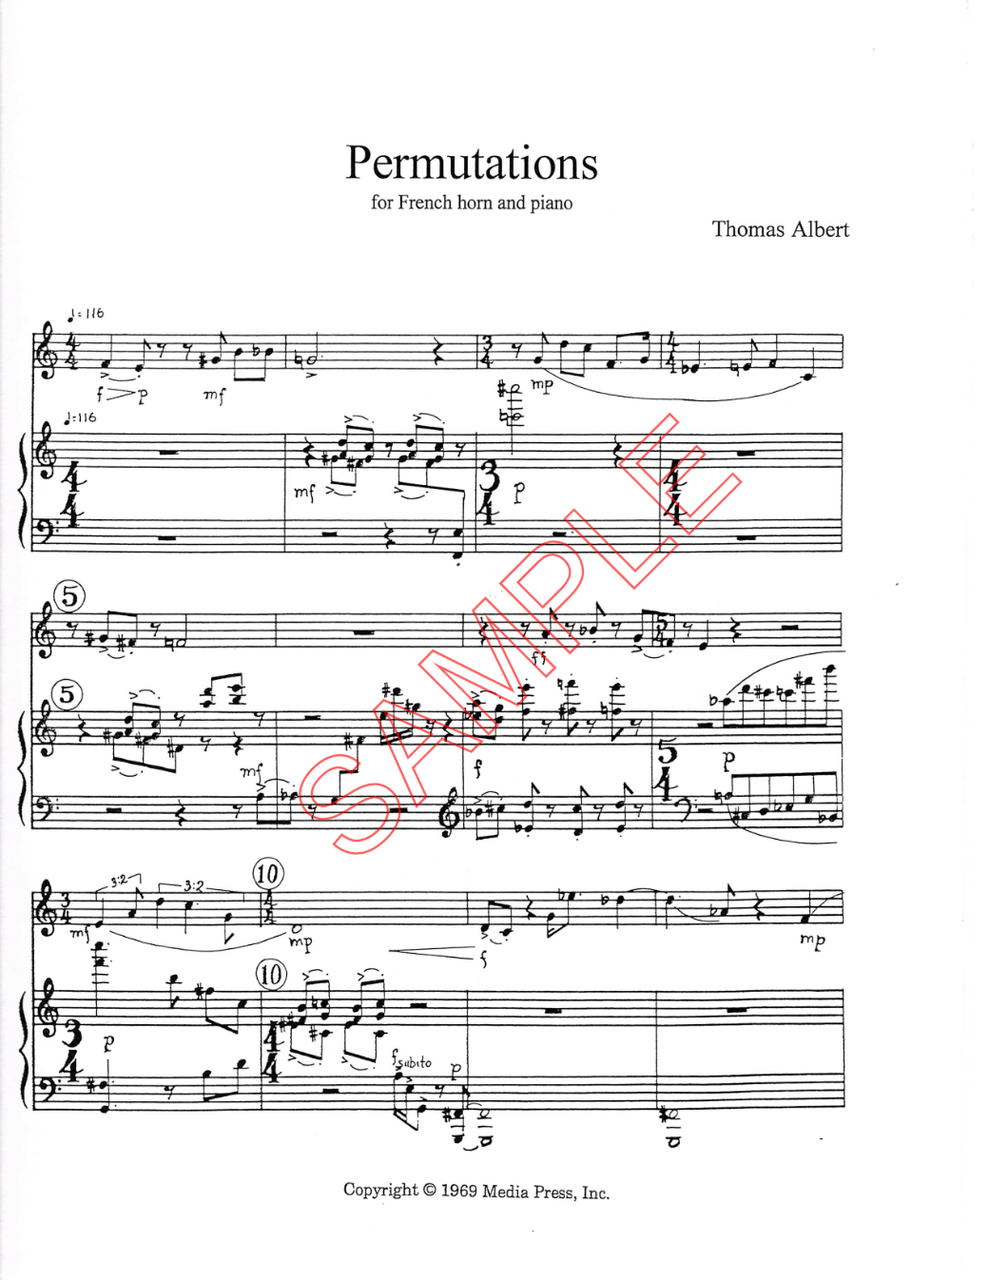 albert thomas permutations for french horn and piano digital download  [ 989 x 1280 Pixel ]